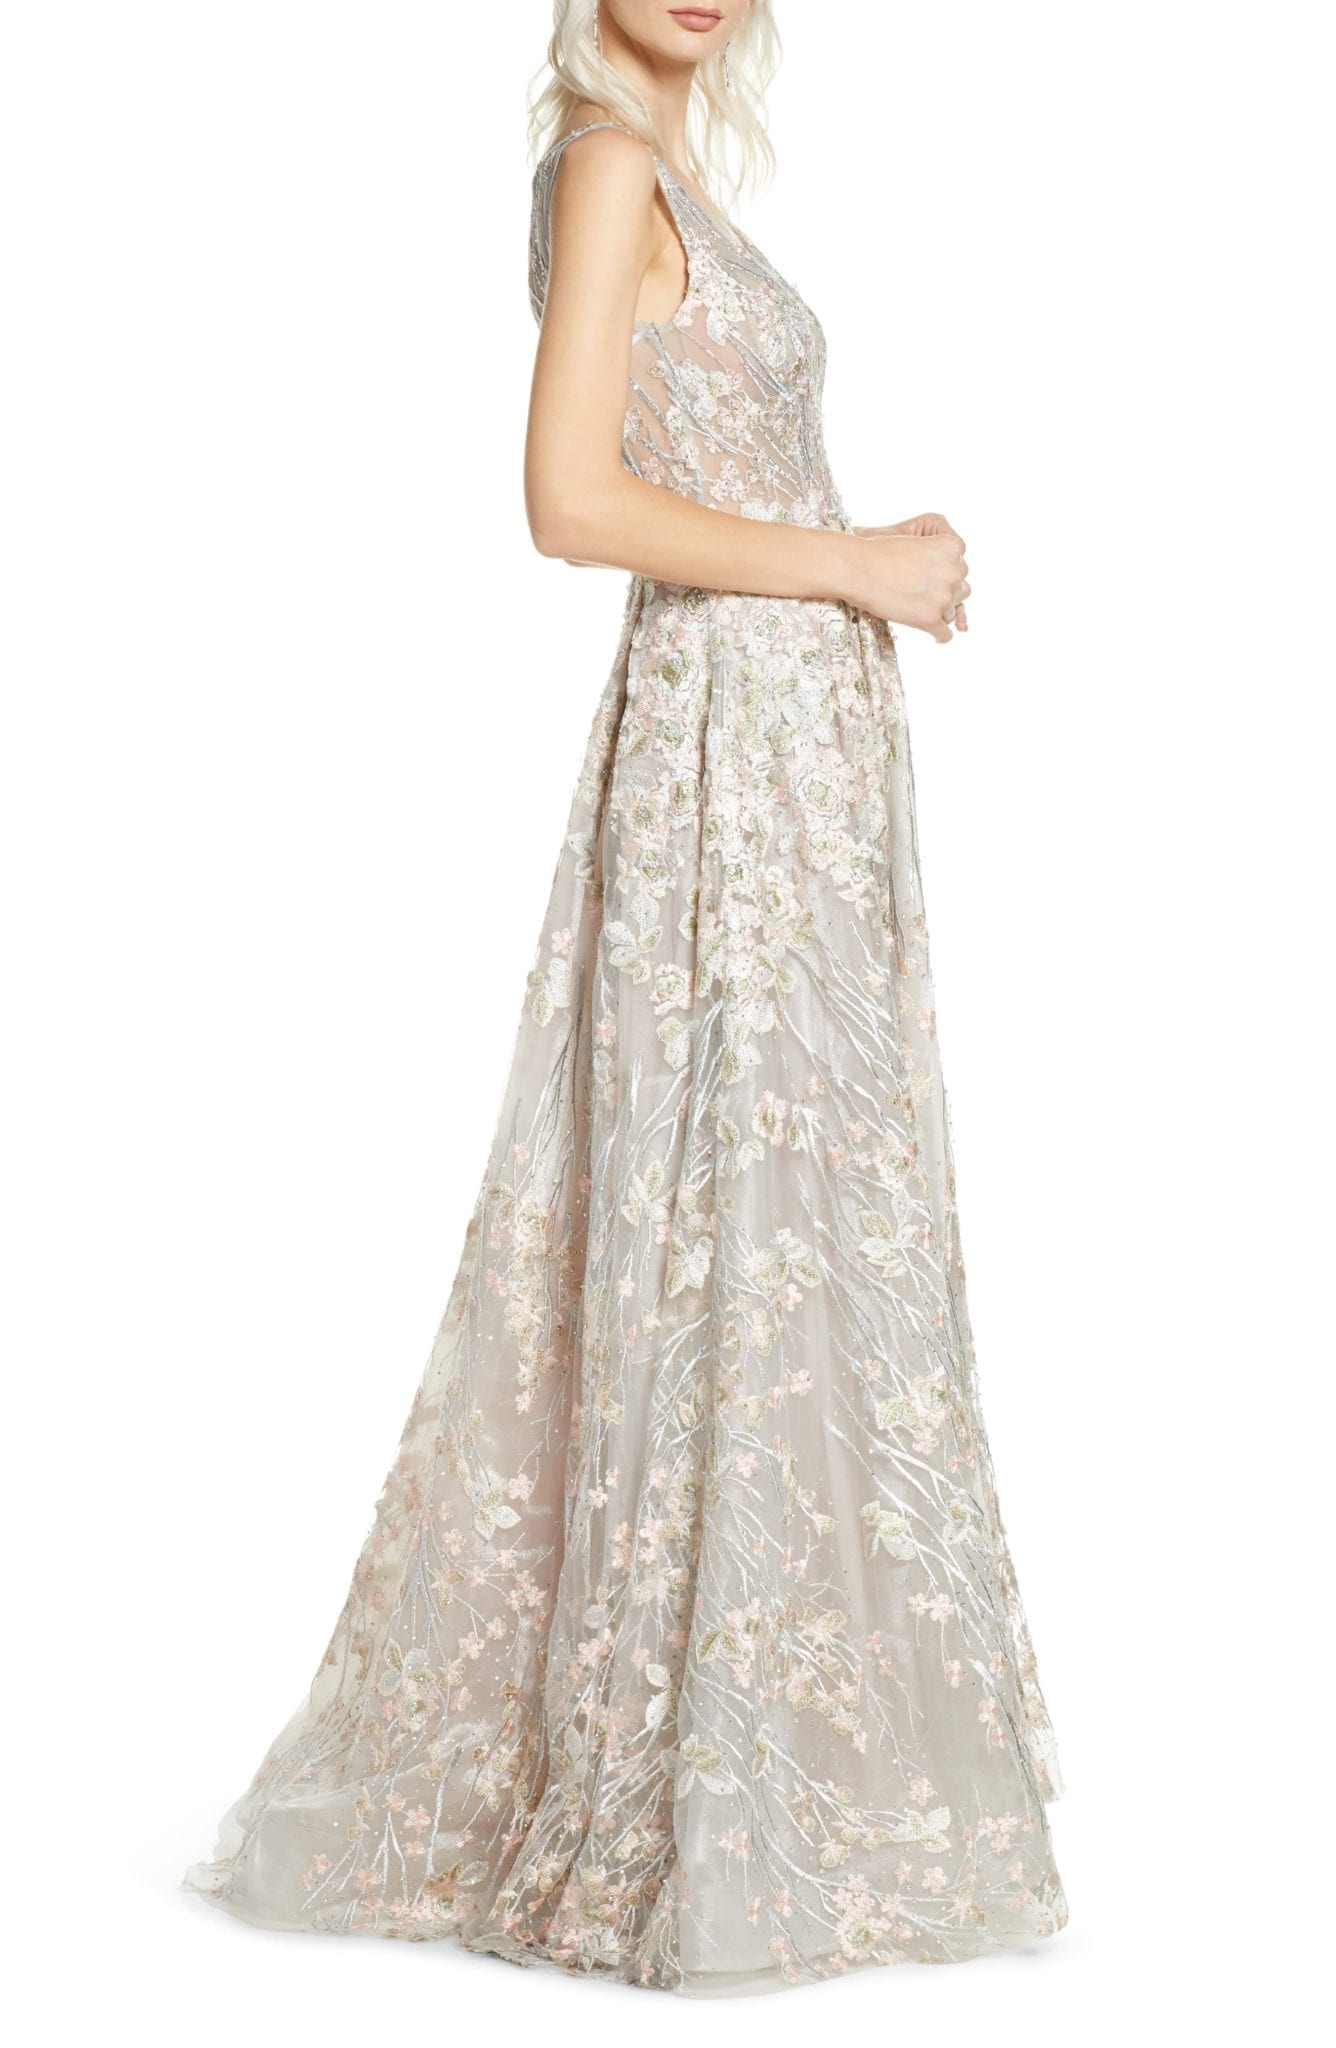 MAC DUGGAL Floral Embroidered V-Neck Gown - We Select Dresses